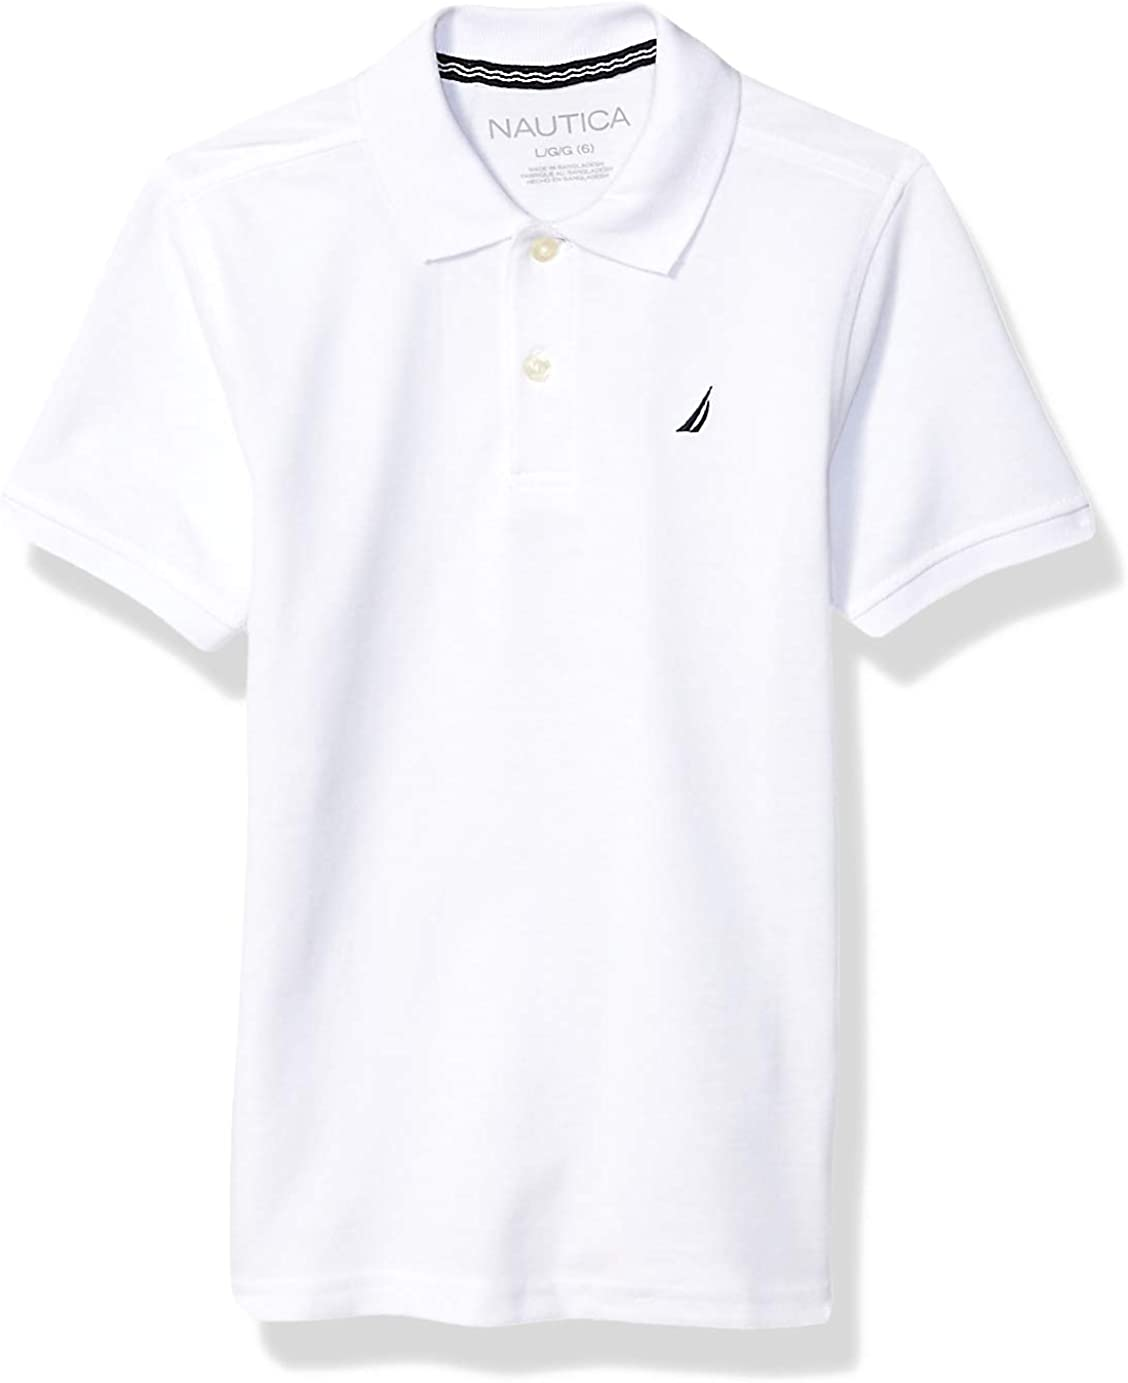 Nautica Max 61% OFF Boys' Short Solid Sleeve Max 52% OFF Polo